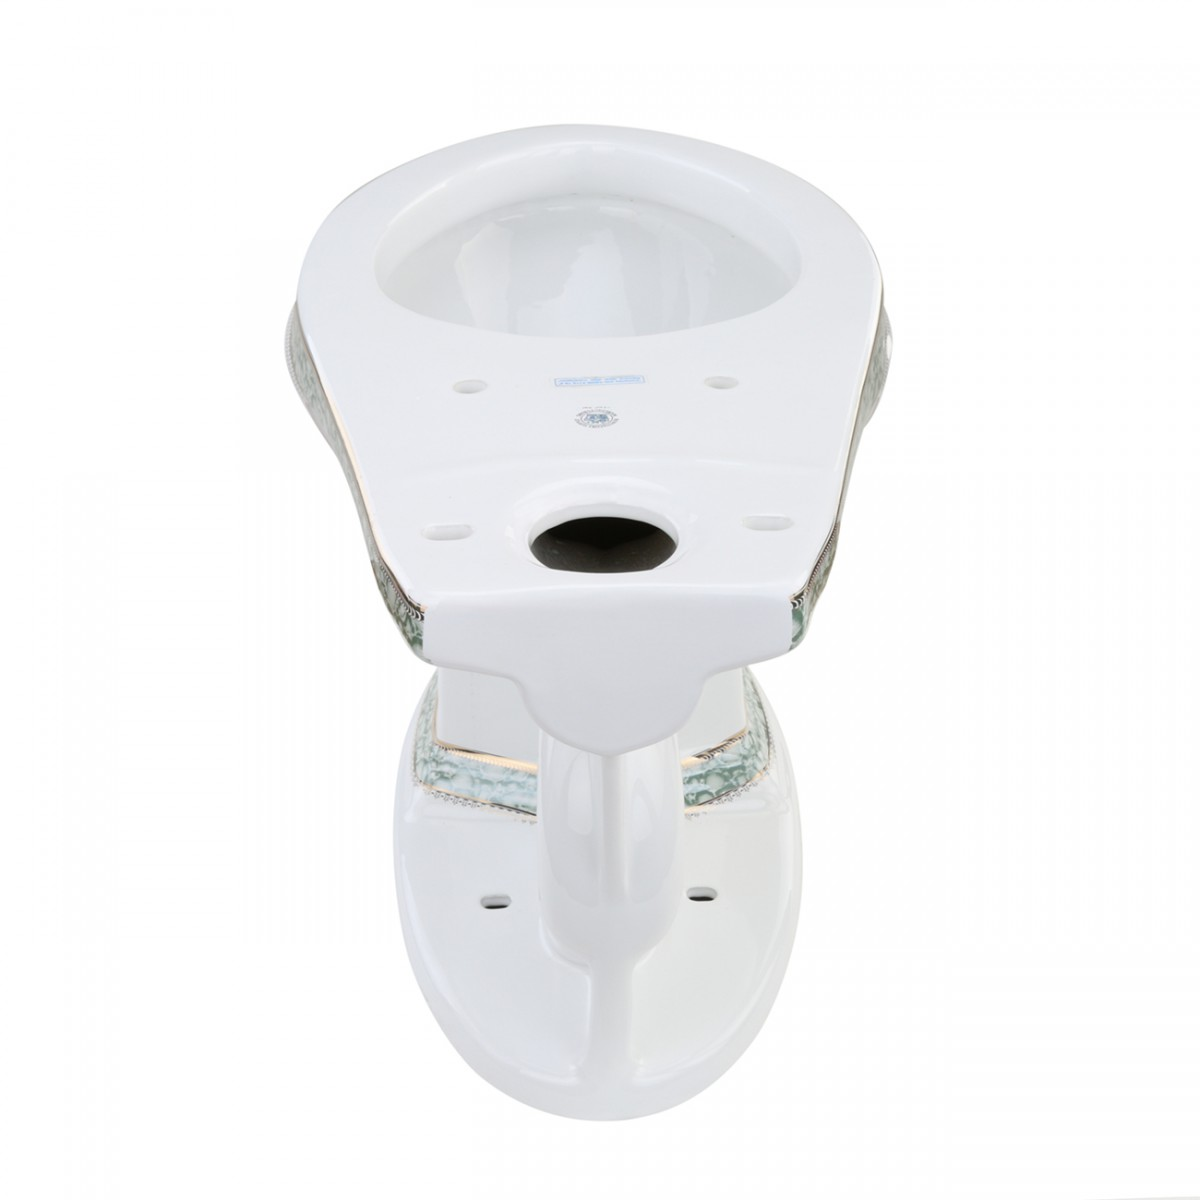 Green and Gold Toilet Bowl for Item 12816